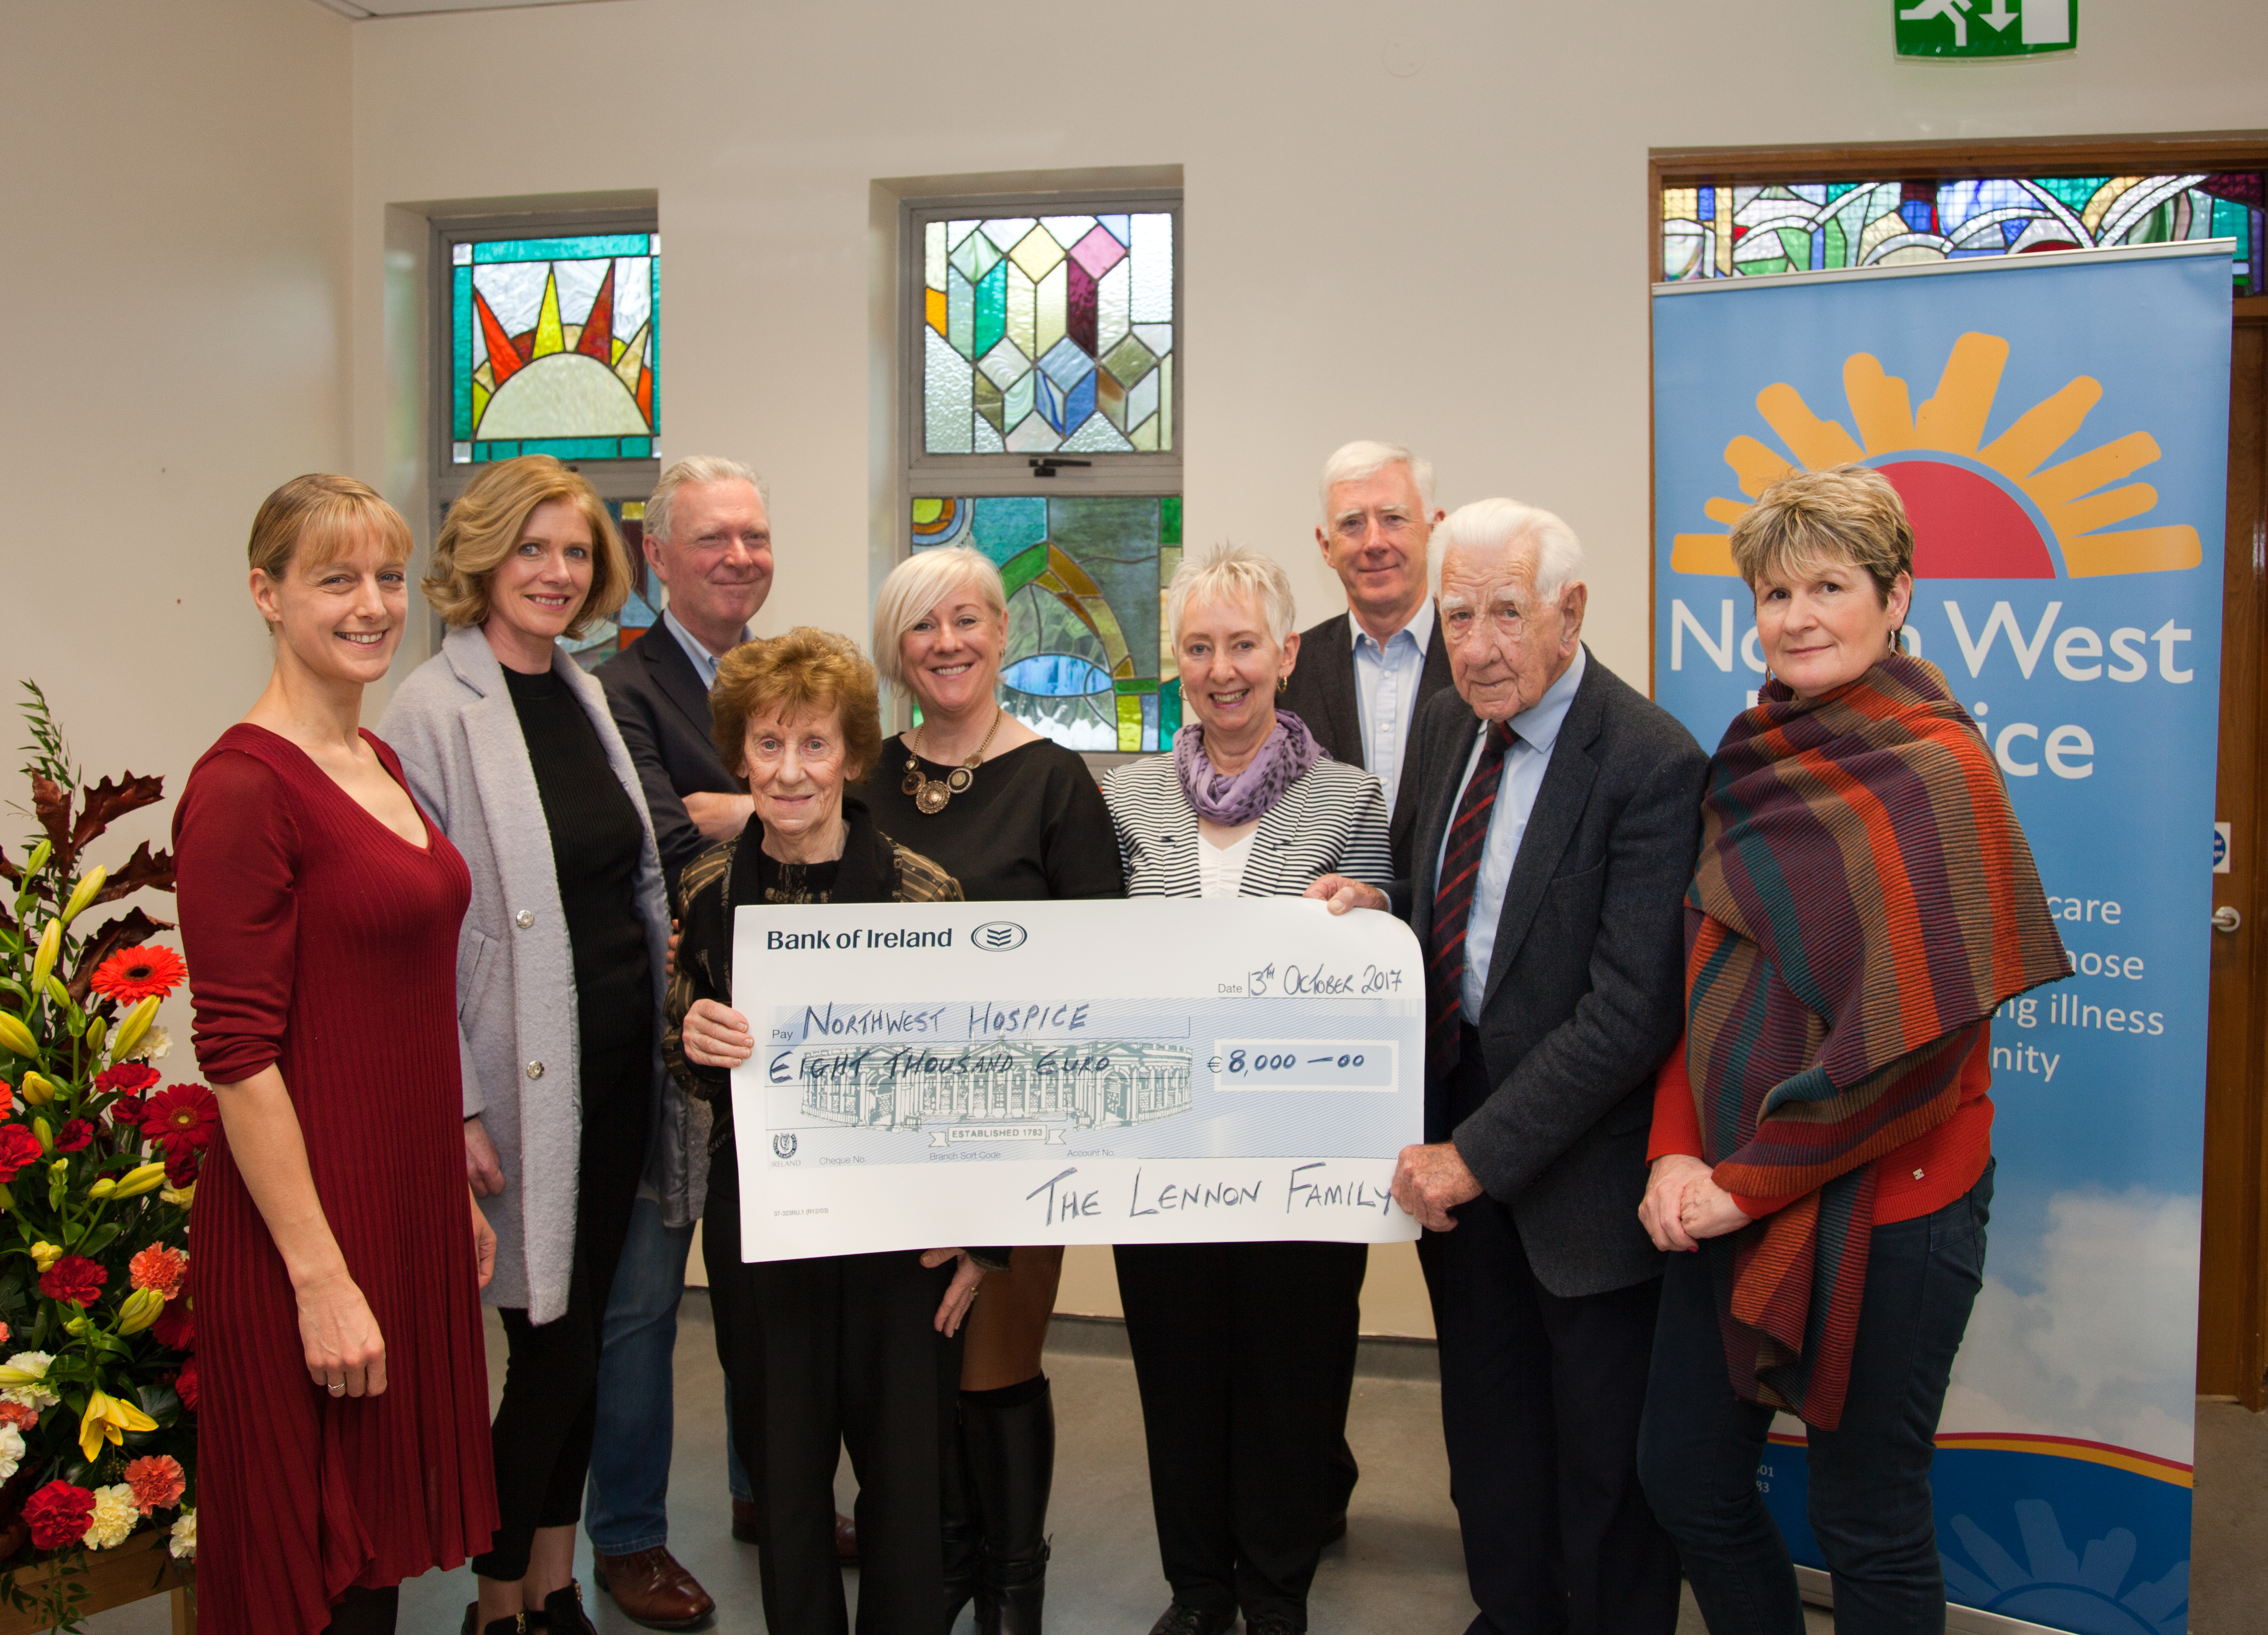 Lennon family presenting a cheque to North West Hospice